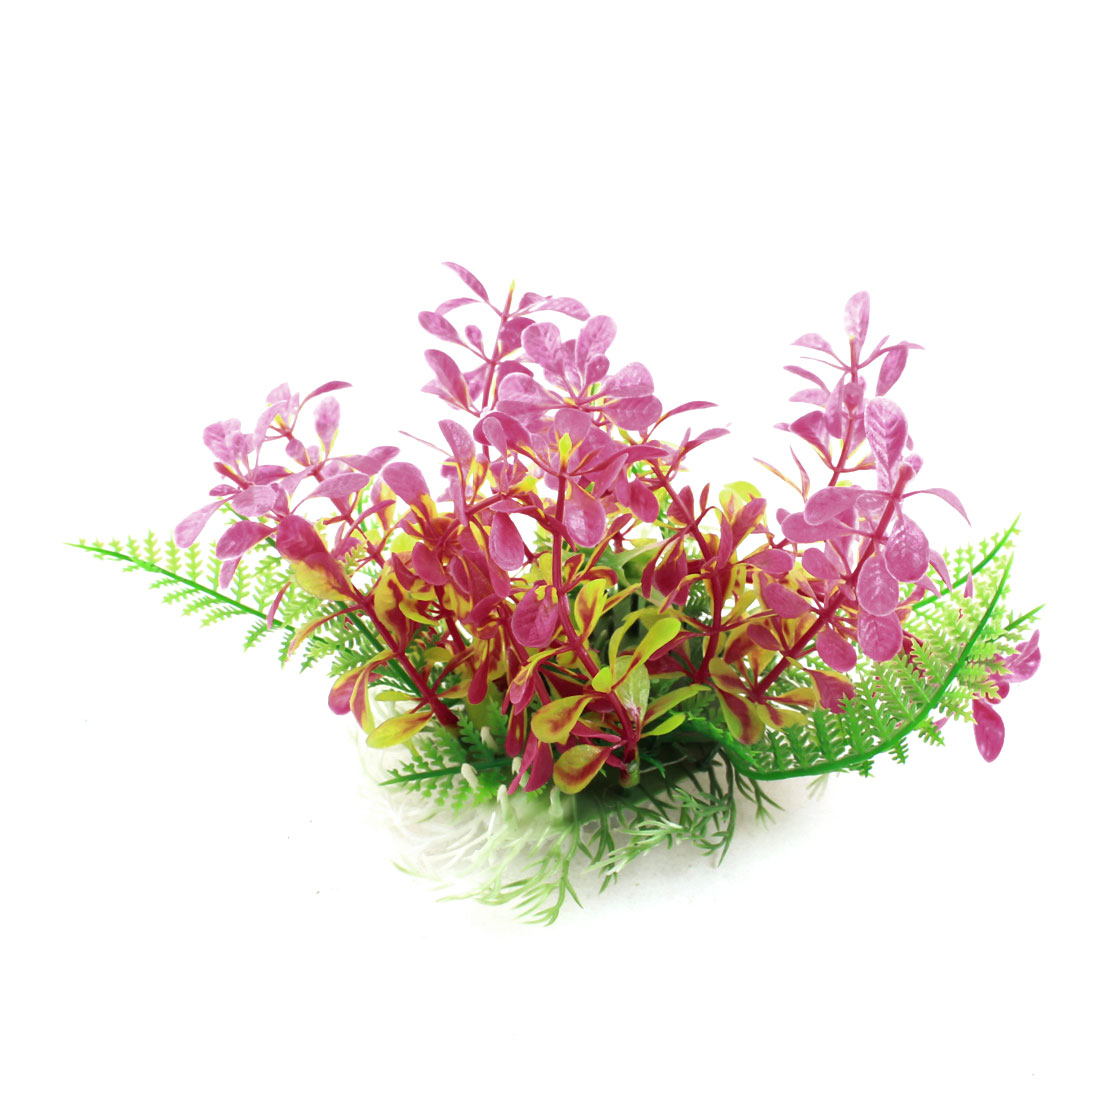 Fish Tank Aquarium Decoration Green Pink Plastic Artificial Vivid Grass Plant